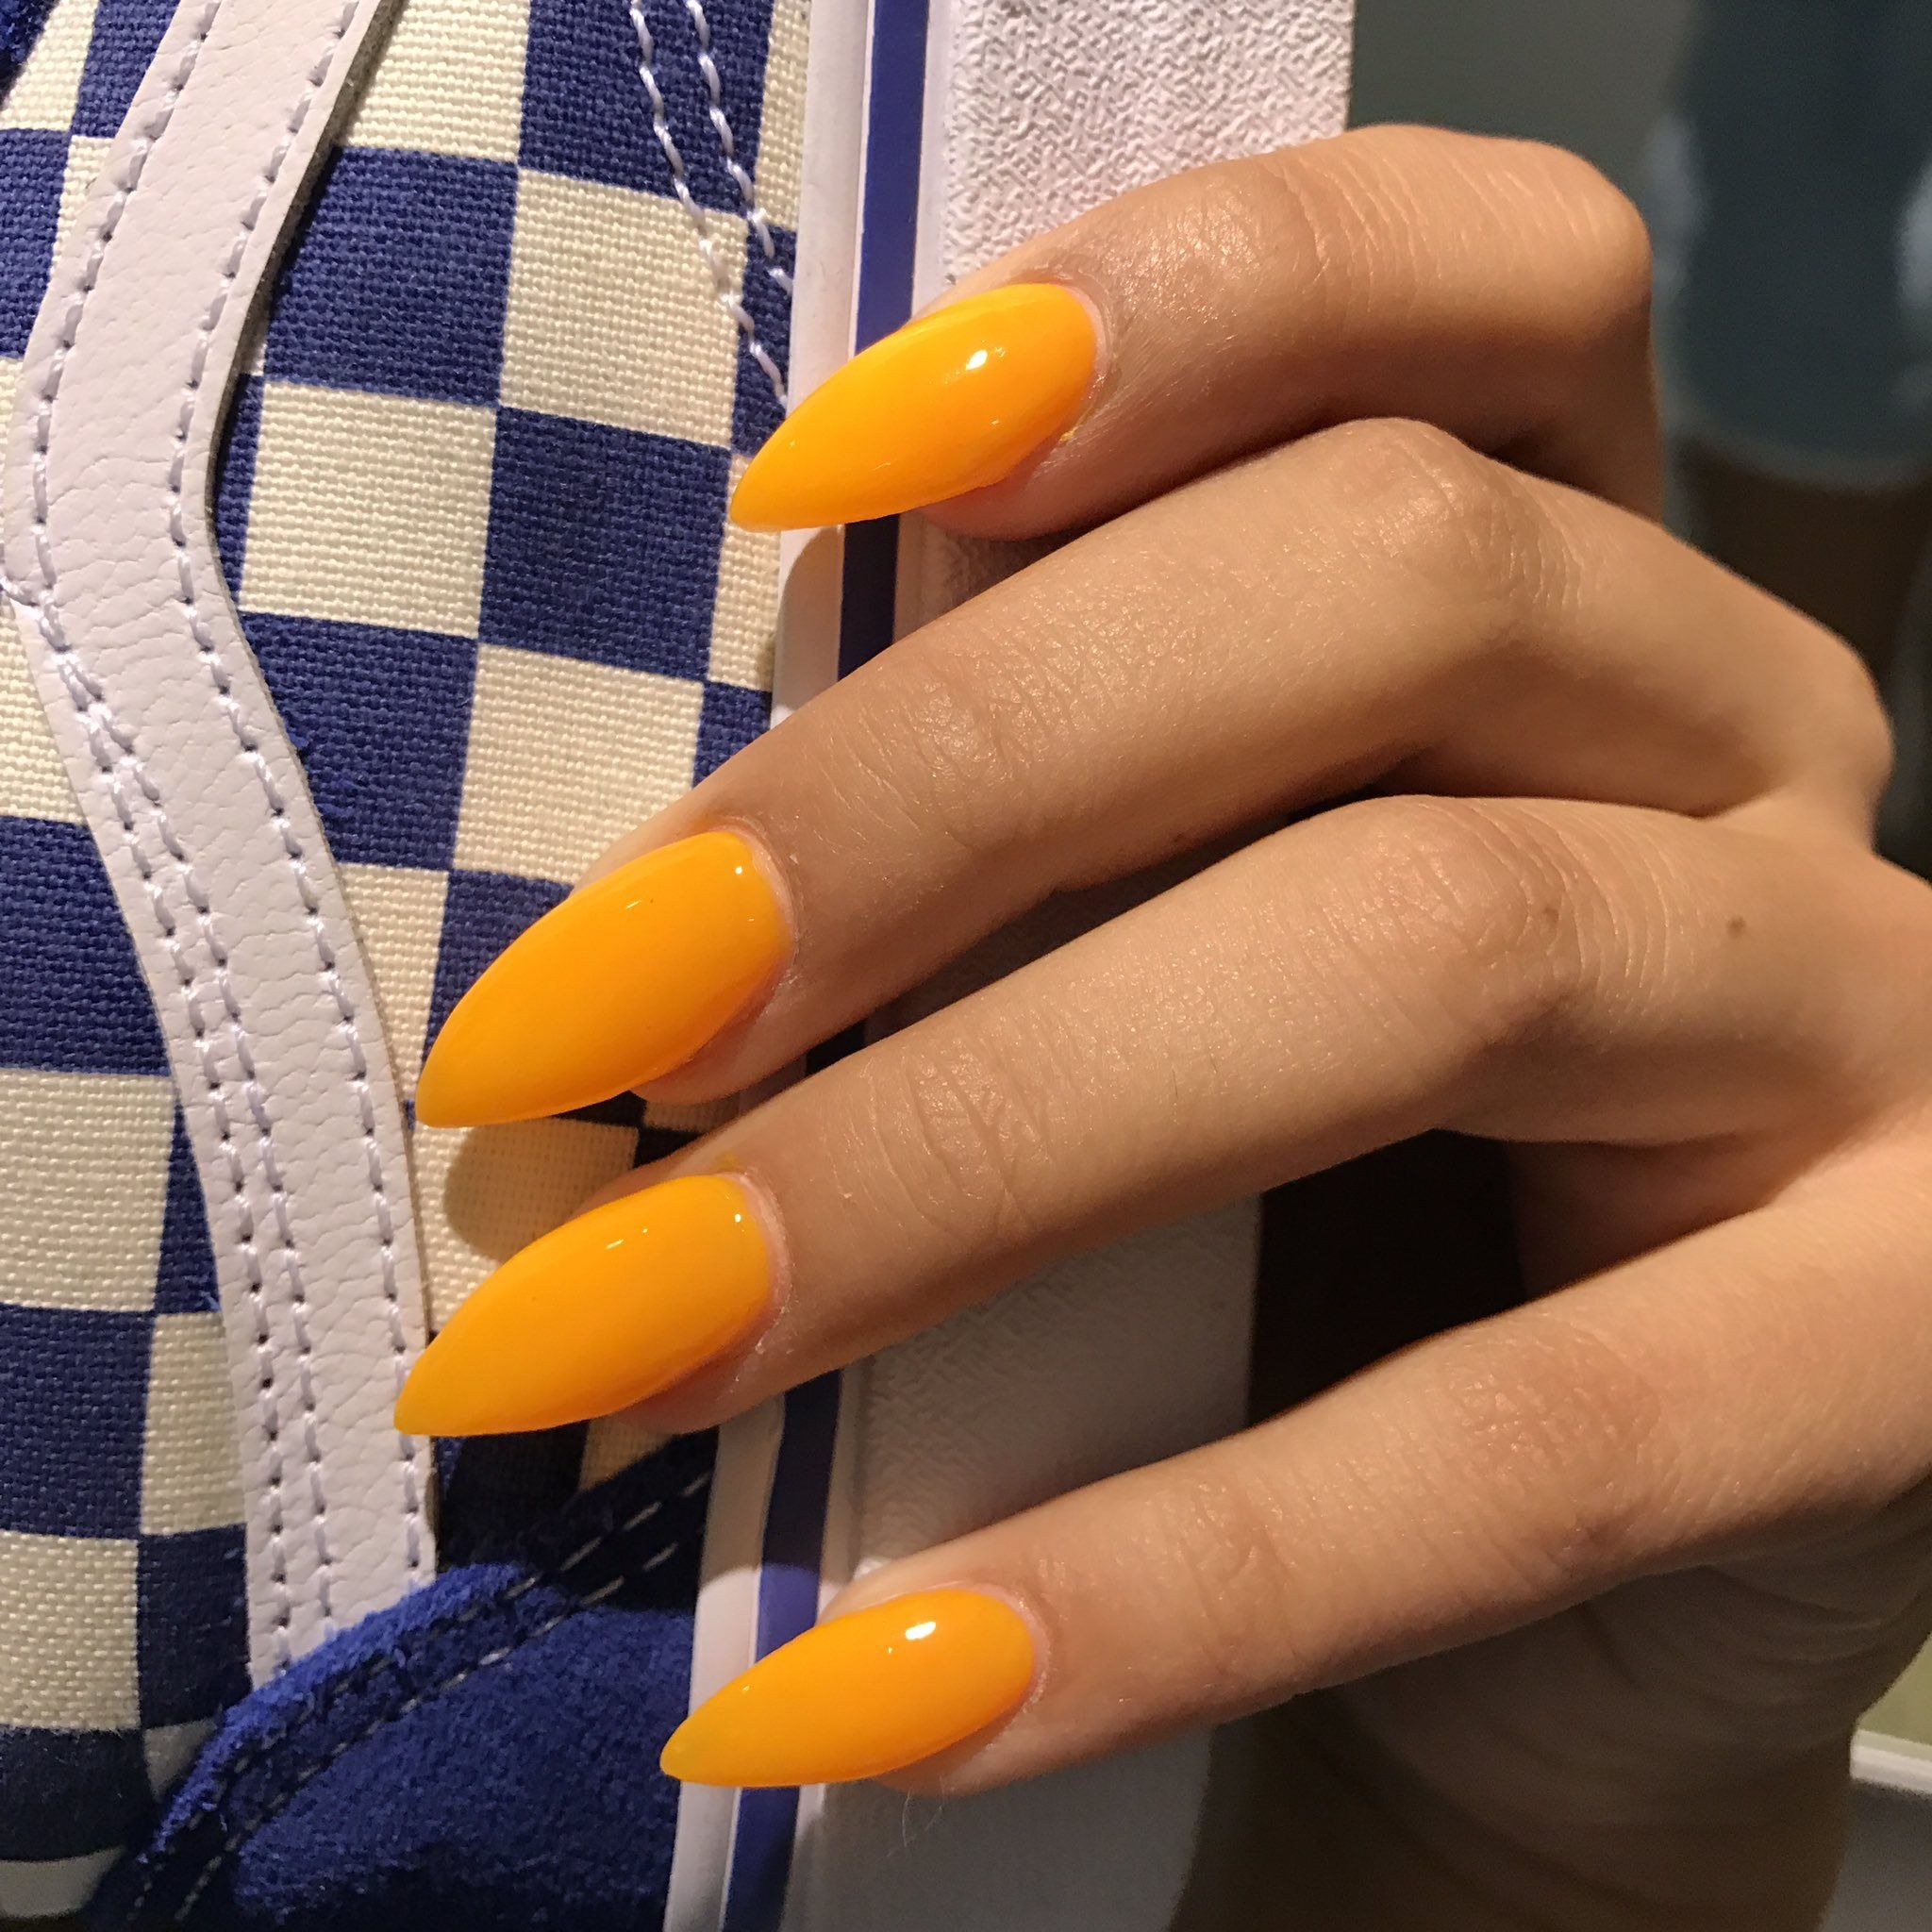 Pin by Alyssa Ballestero on nails* | Pinterest | Wig, Nail inspo and ...